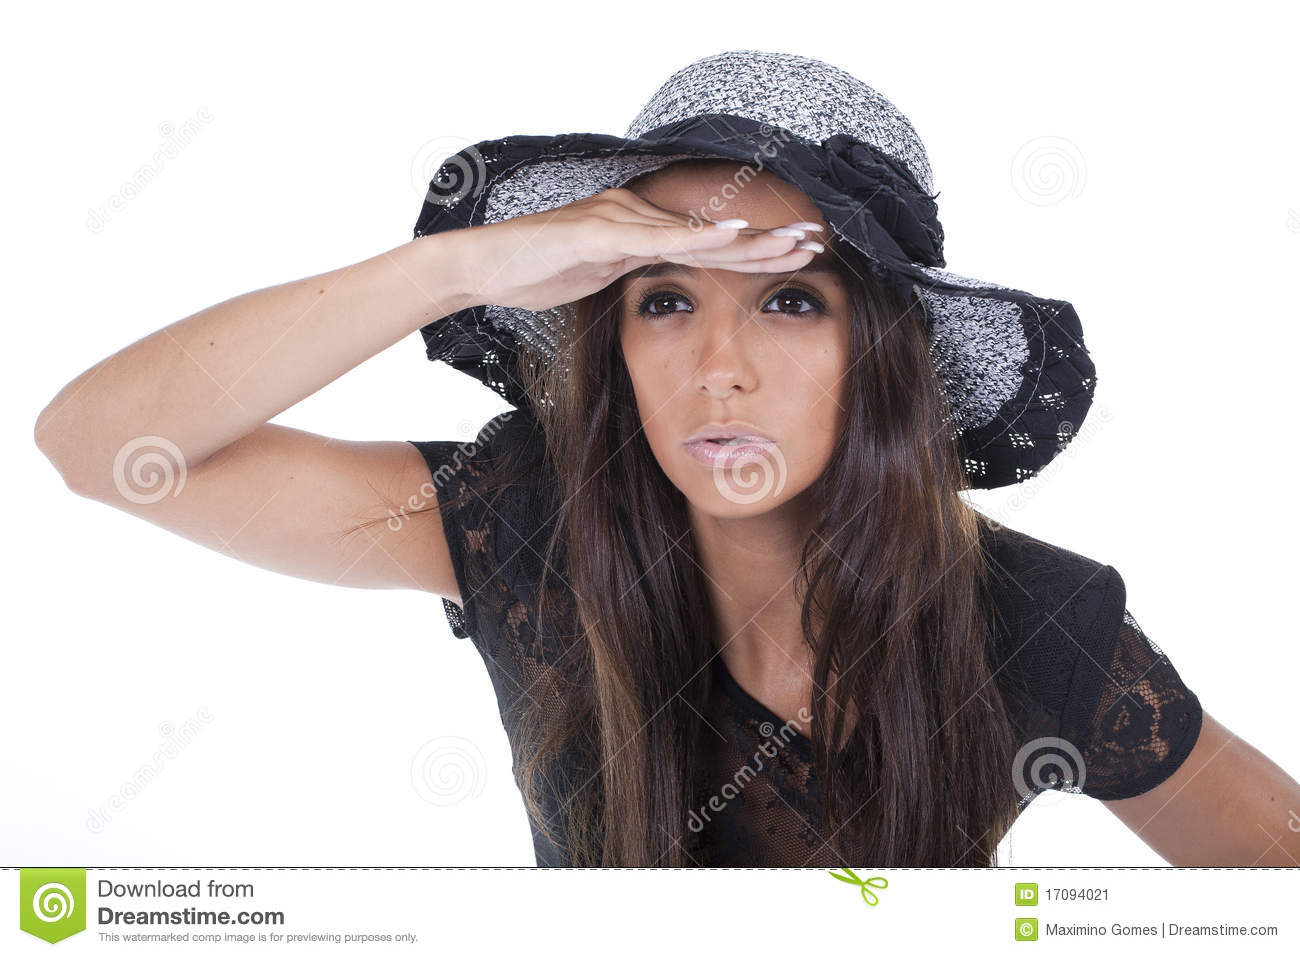 Young and beautiful woman looking far ahead with a hat on